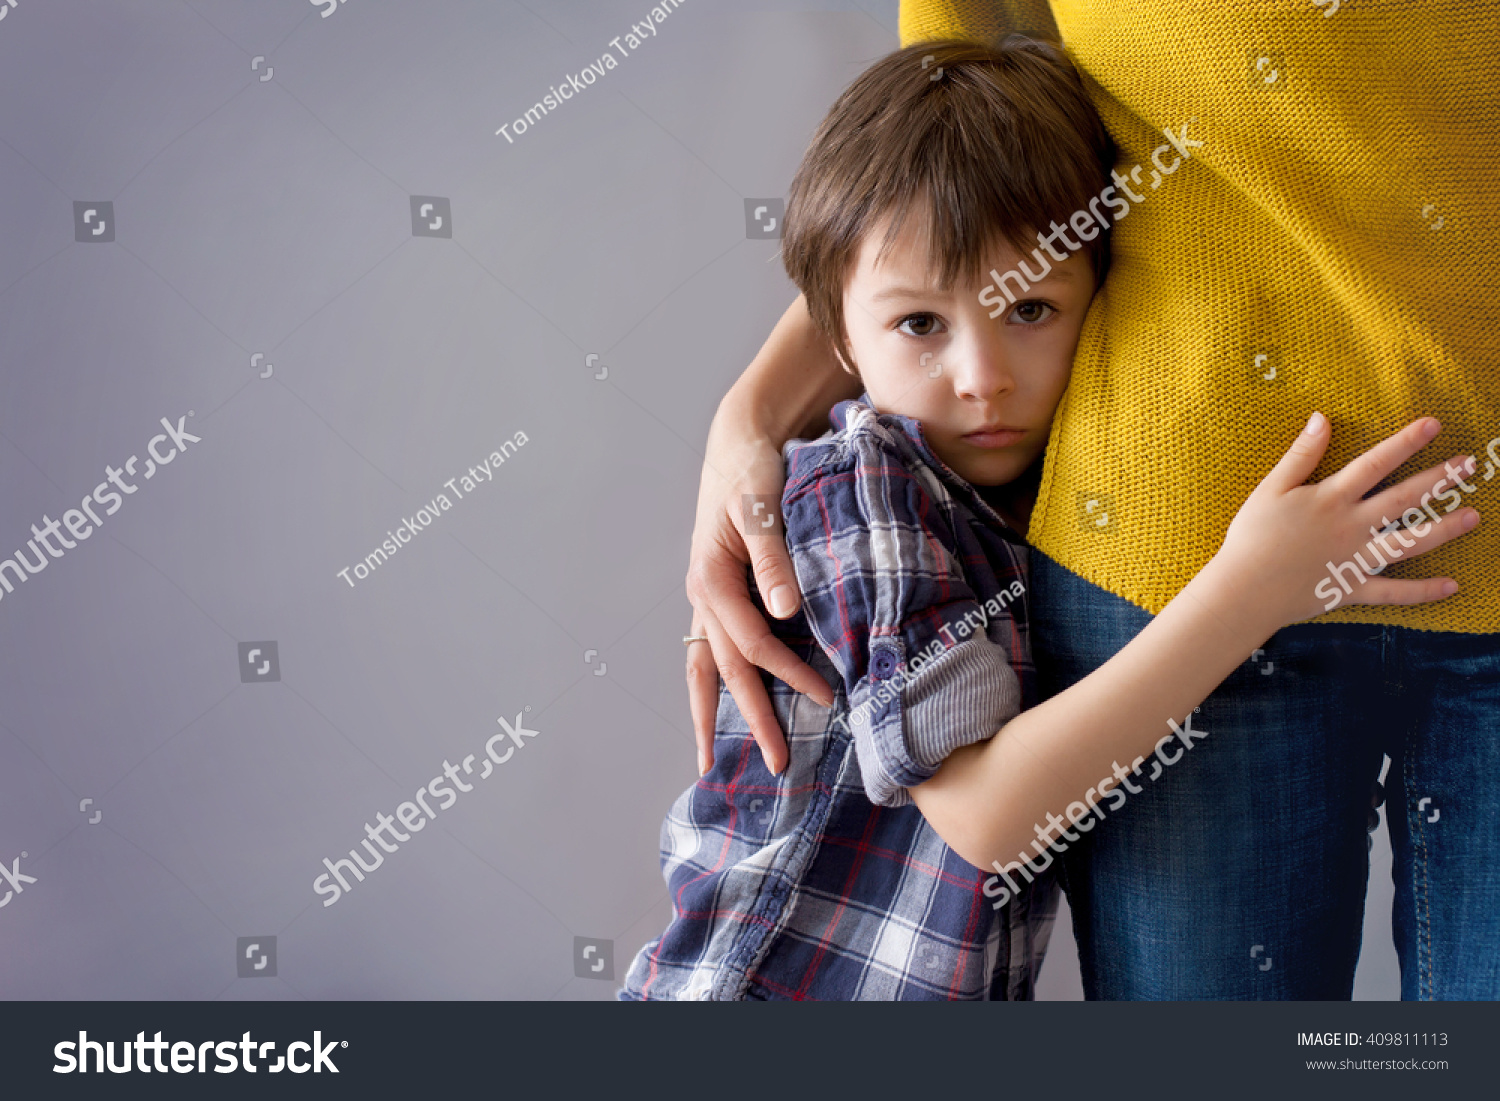 Sad little child, boy, hugging his mother at home, isolated image, copy space. Family concept #409811113